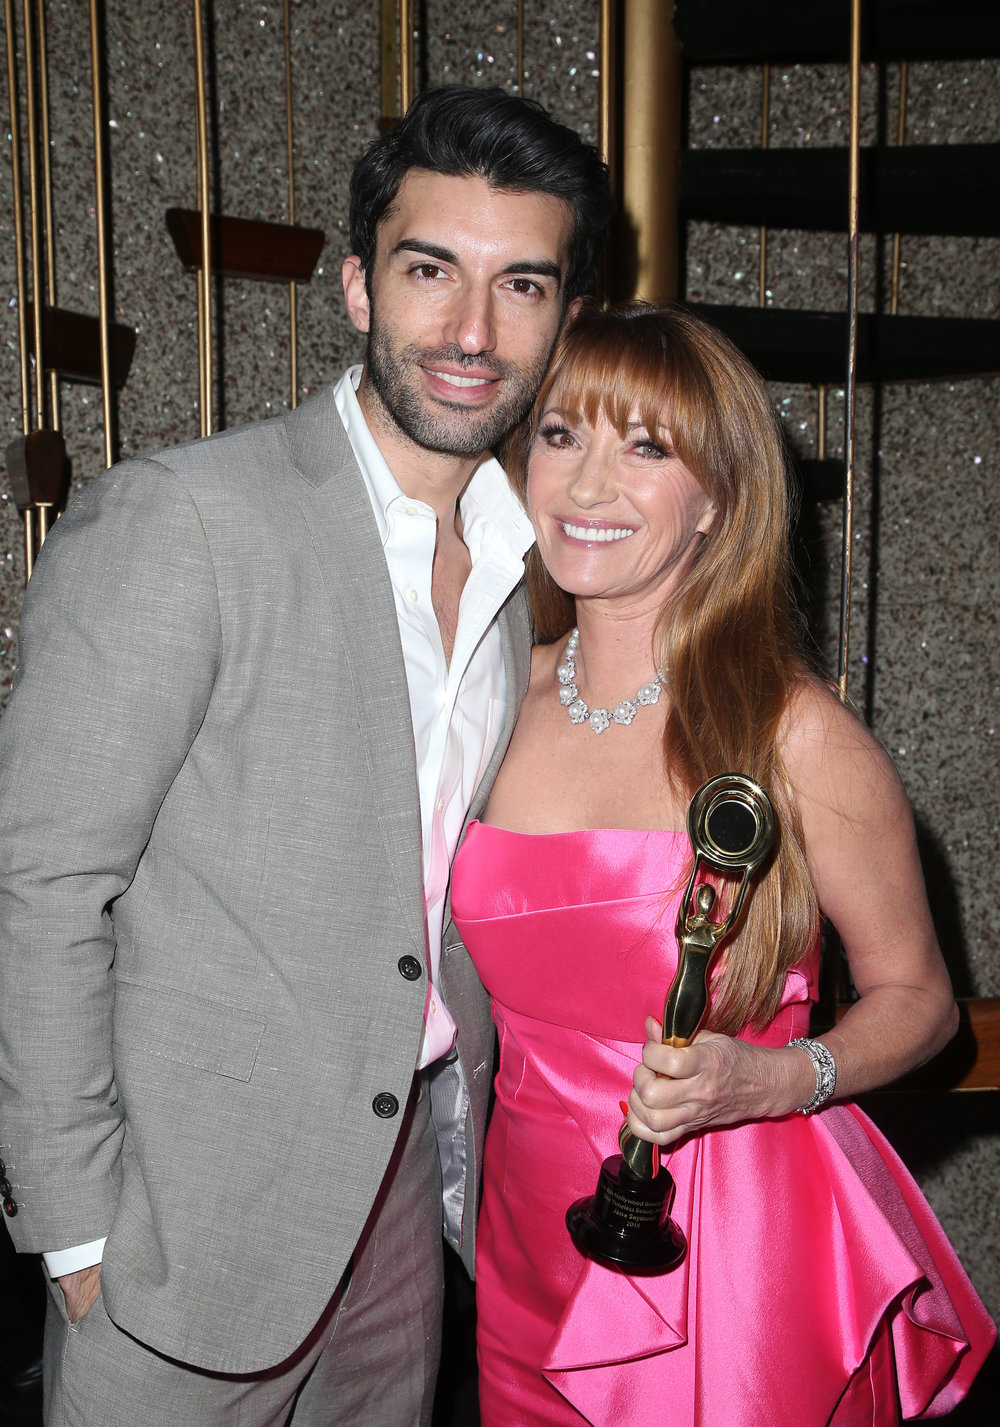 Justin Baldoni and Jane Seymour | Feb 25, 2018, Hollywood Beauty Awards held at the Avalon